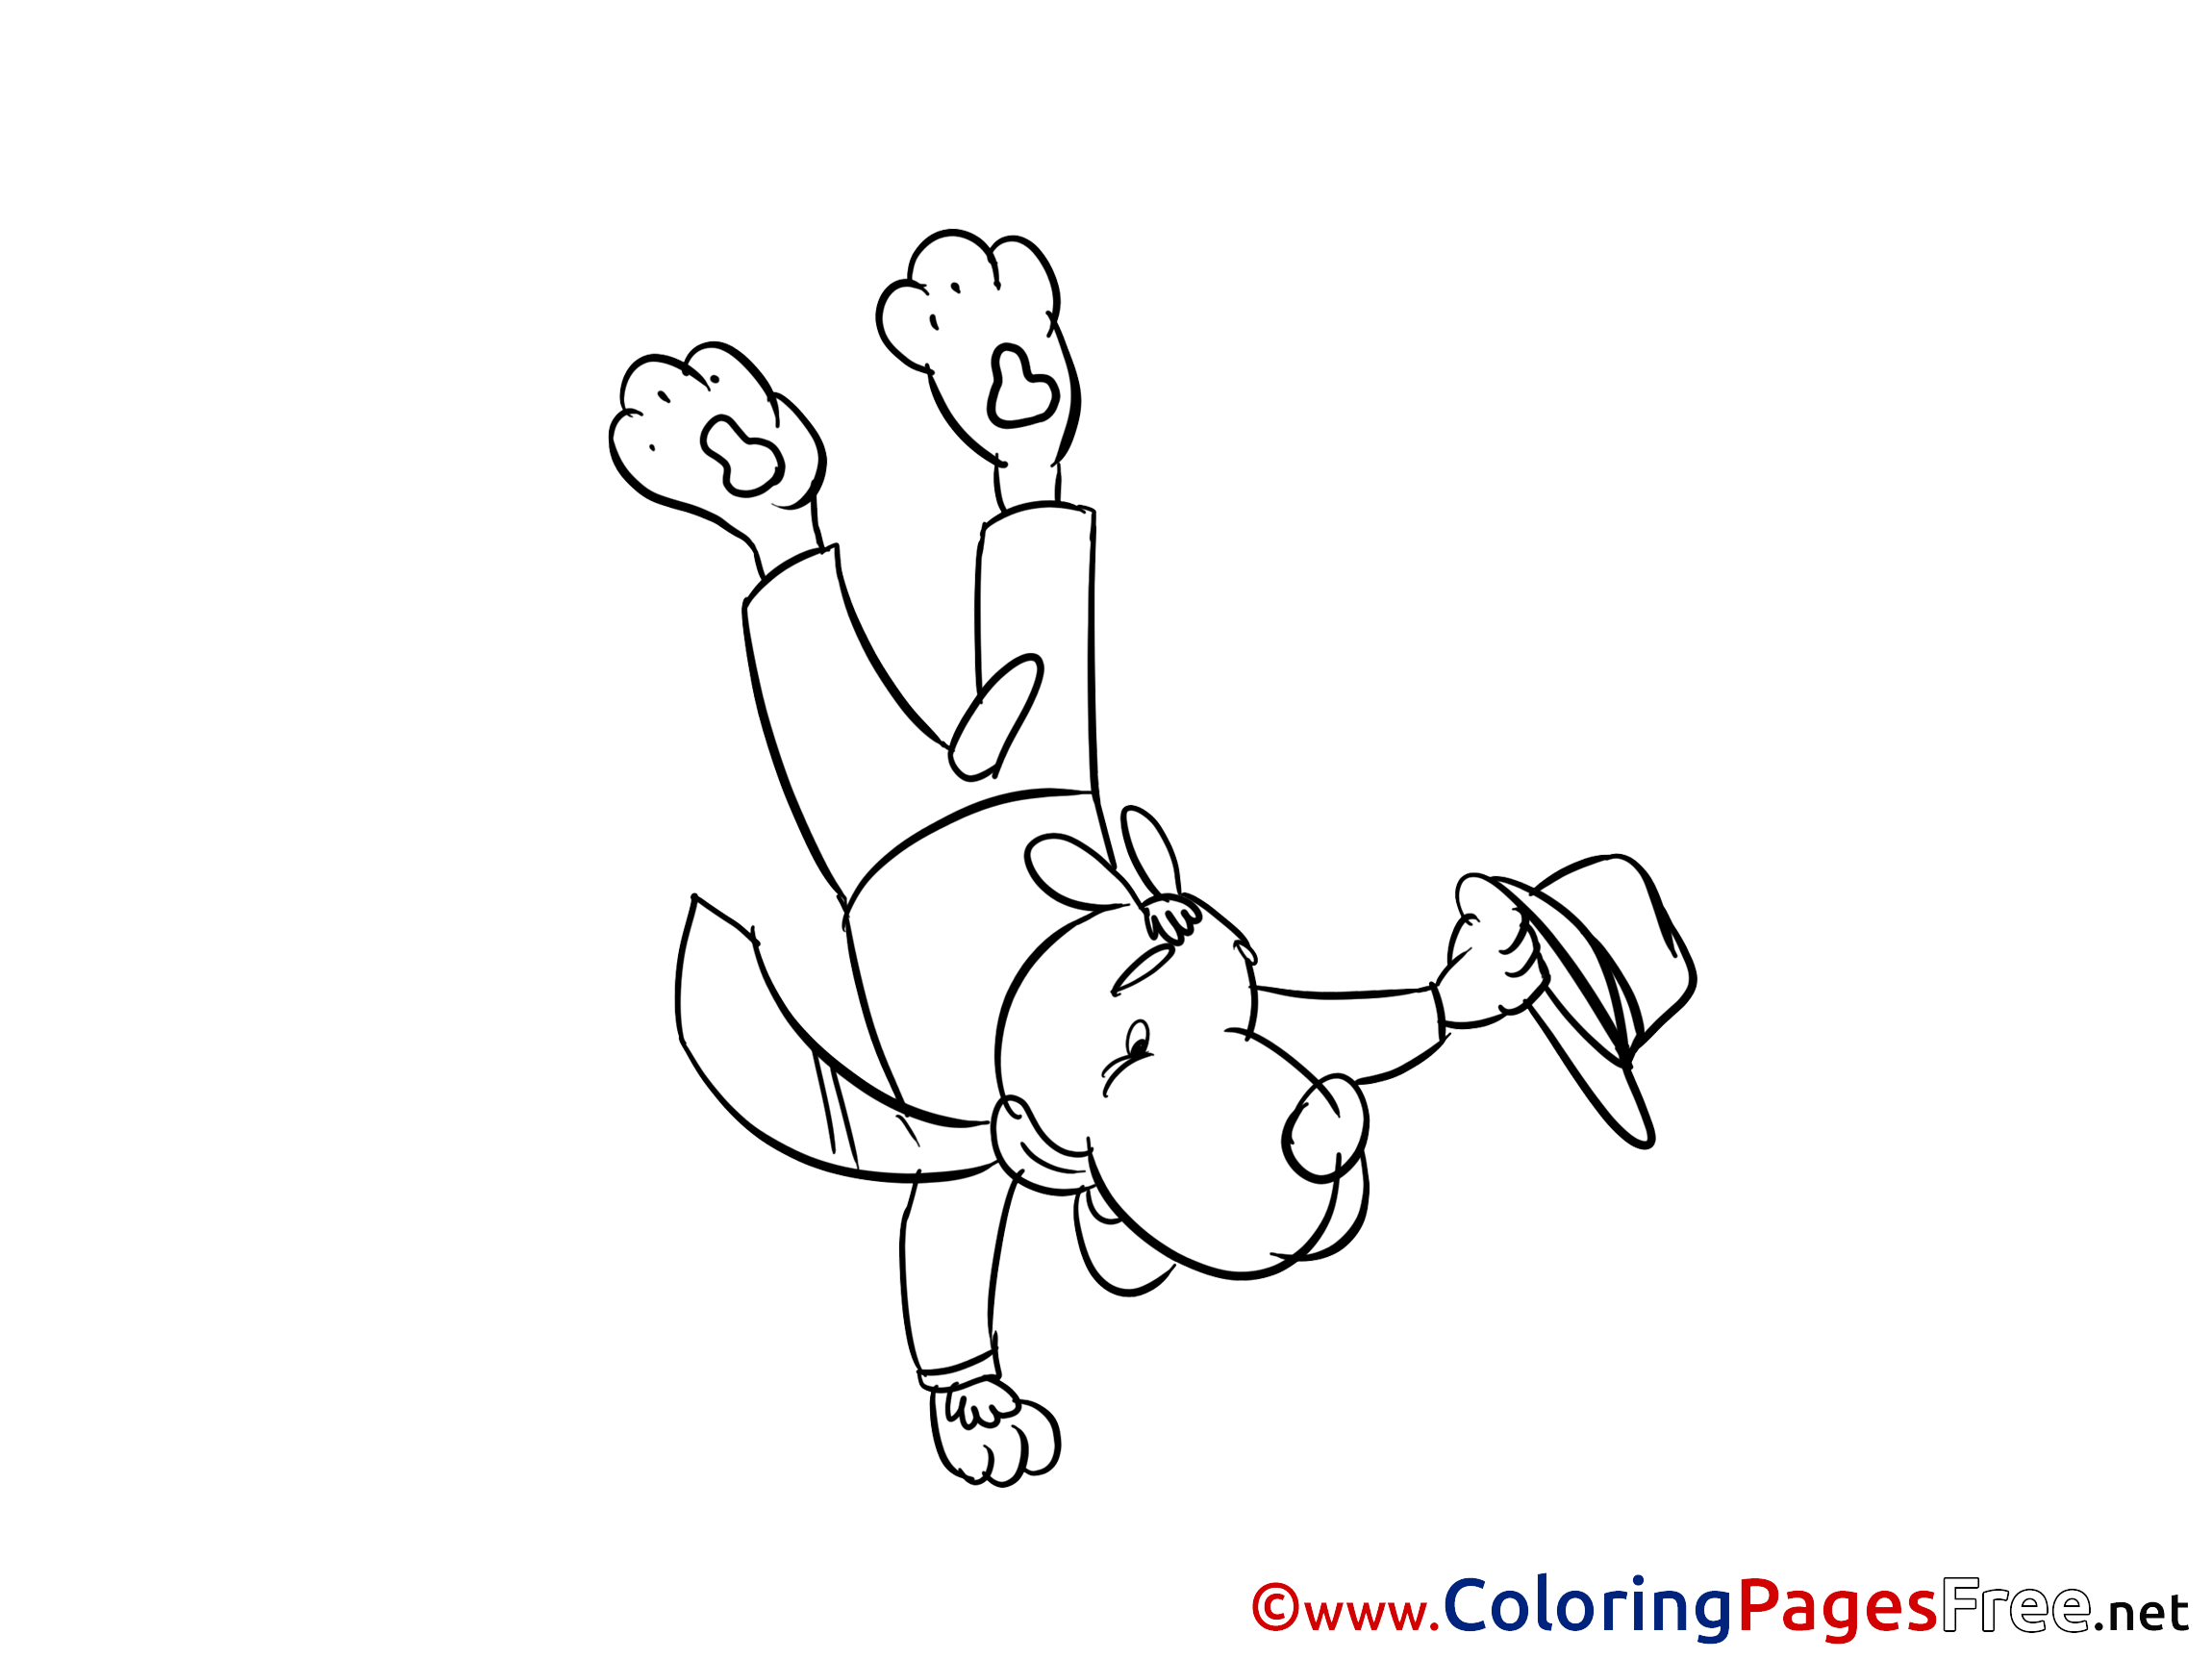 Title Of Coloring Sheet Acrobat For Children Free Pages